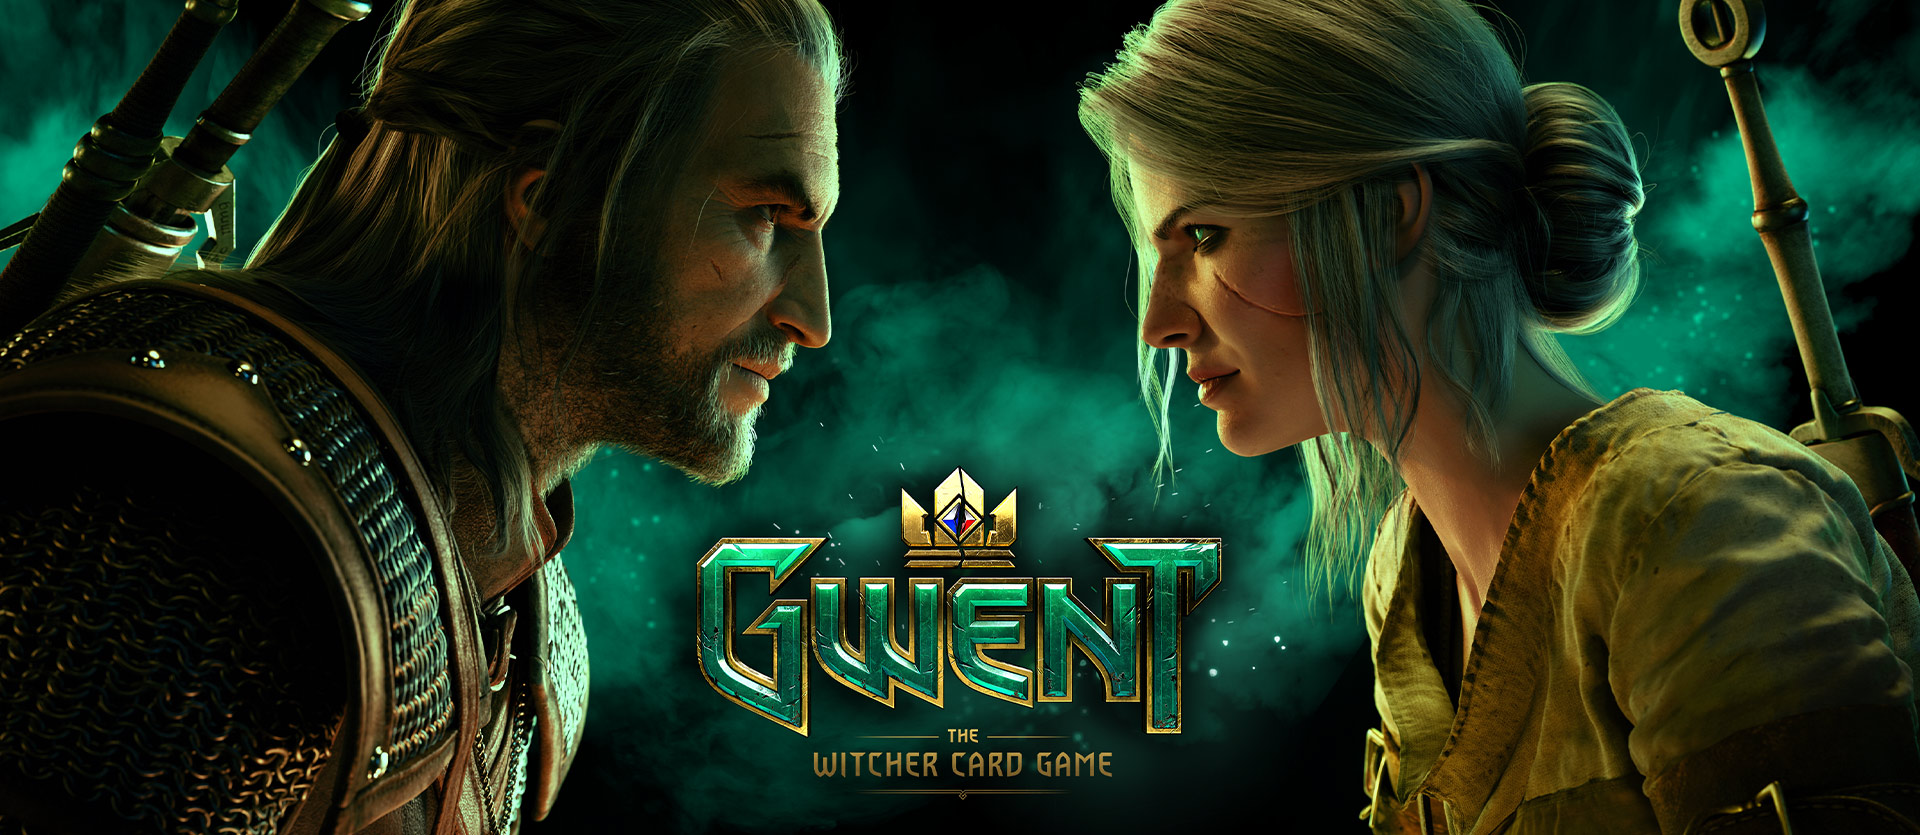 Gwent the Witcher Card Game, Profile view of Geralt and Ciri as they faceoff